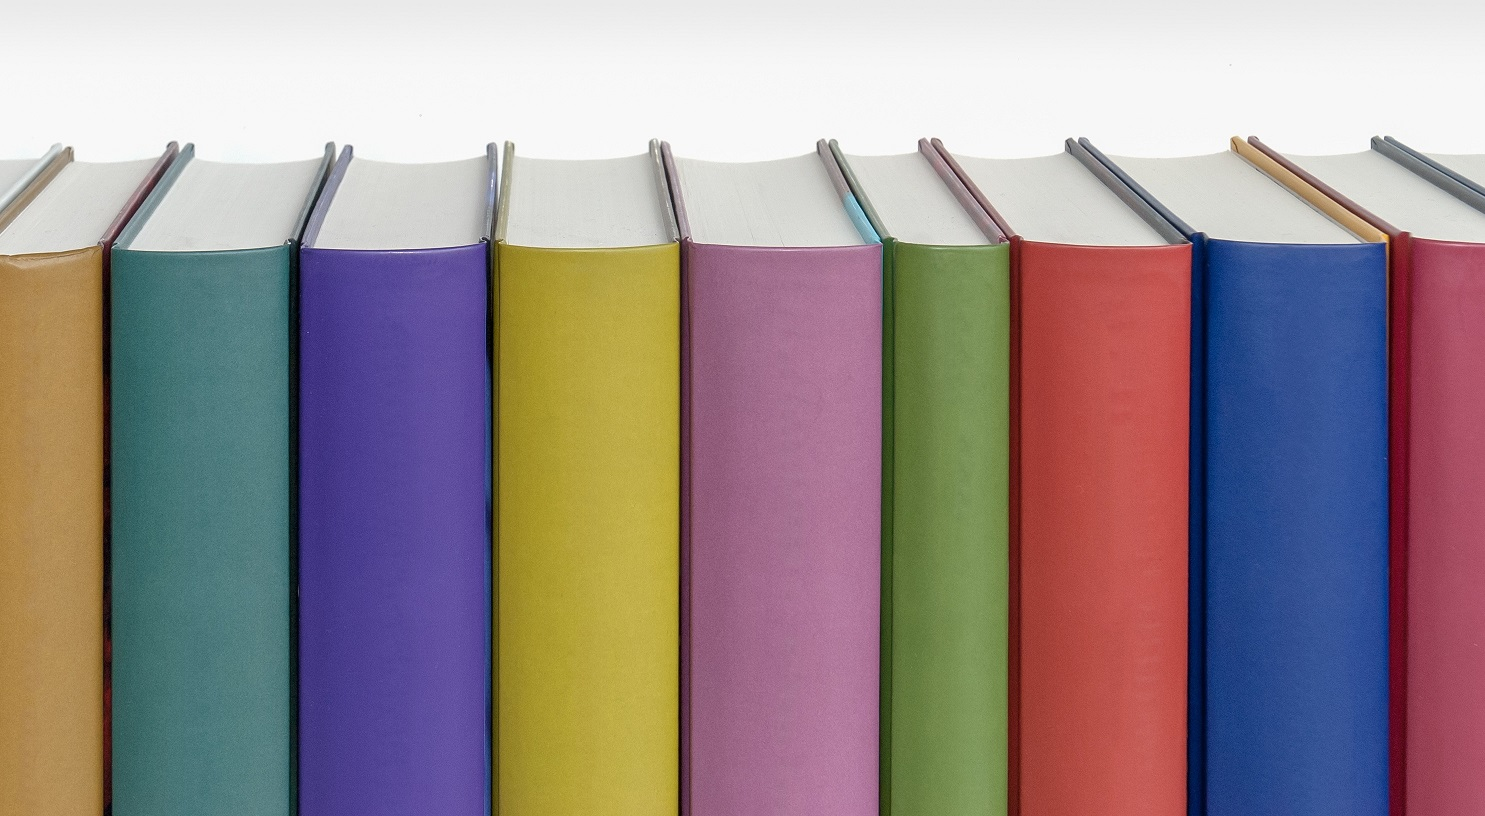 Product Thinking Books: 5 Essential Reads We Recommend